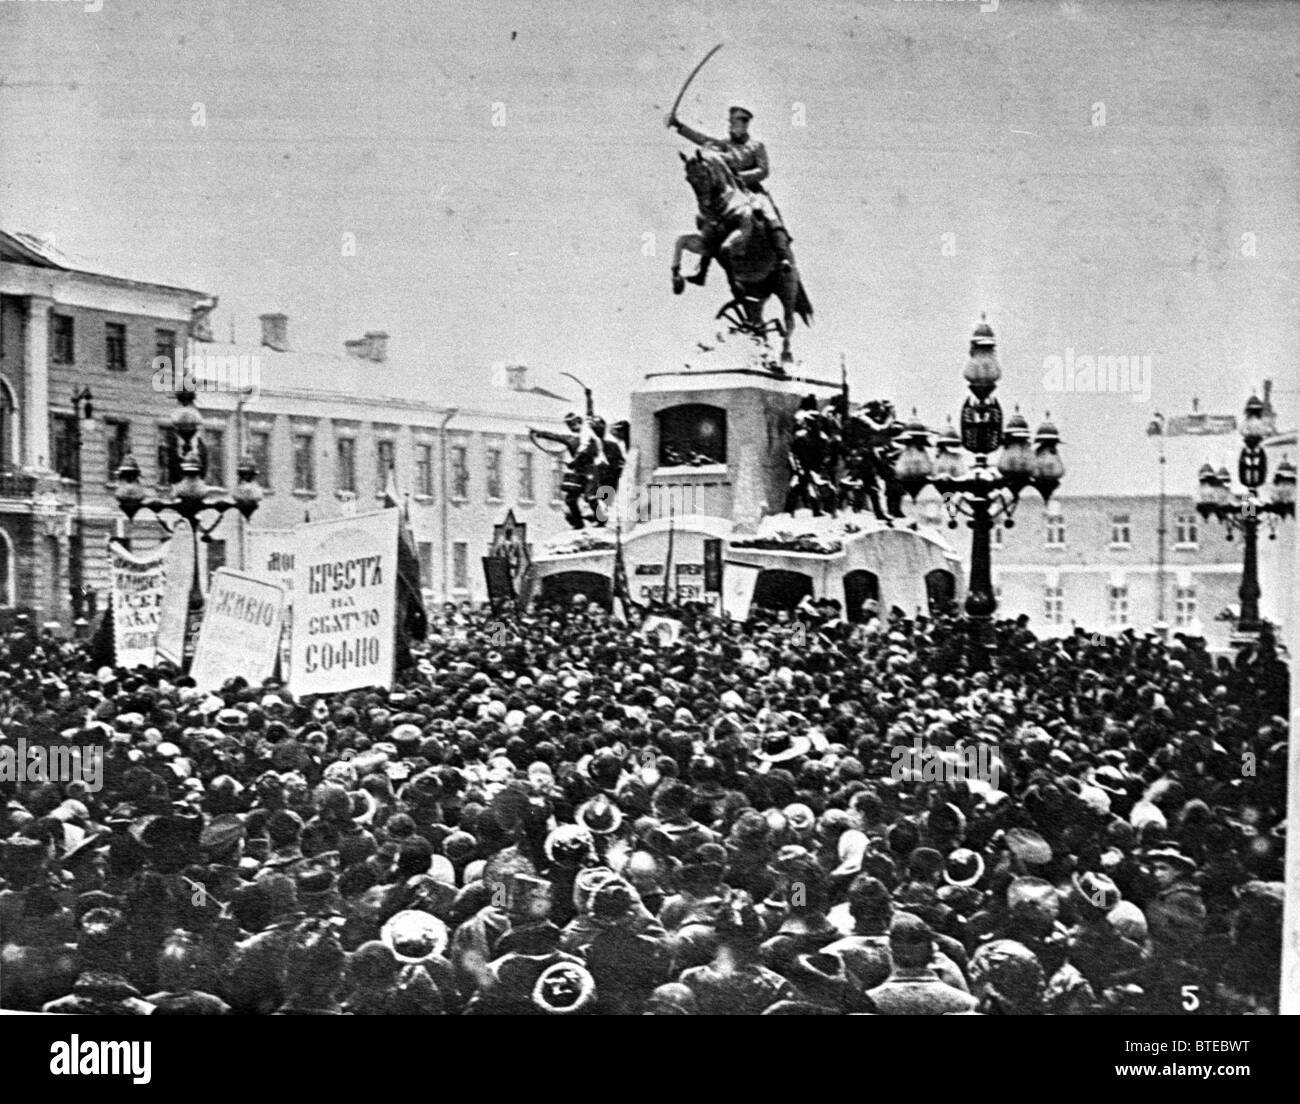 WWI. The Slavic Day in Moscow, January 11, 1915. - Stock Image